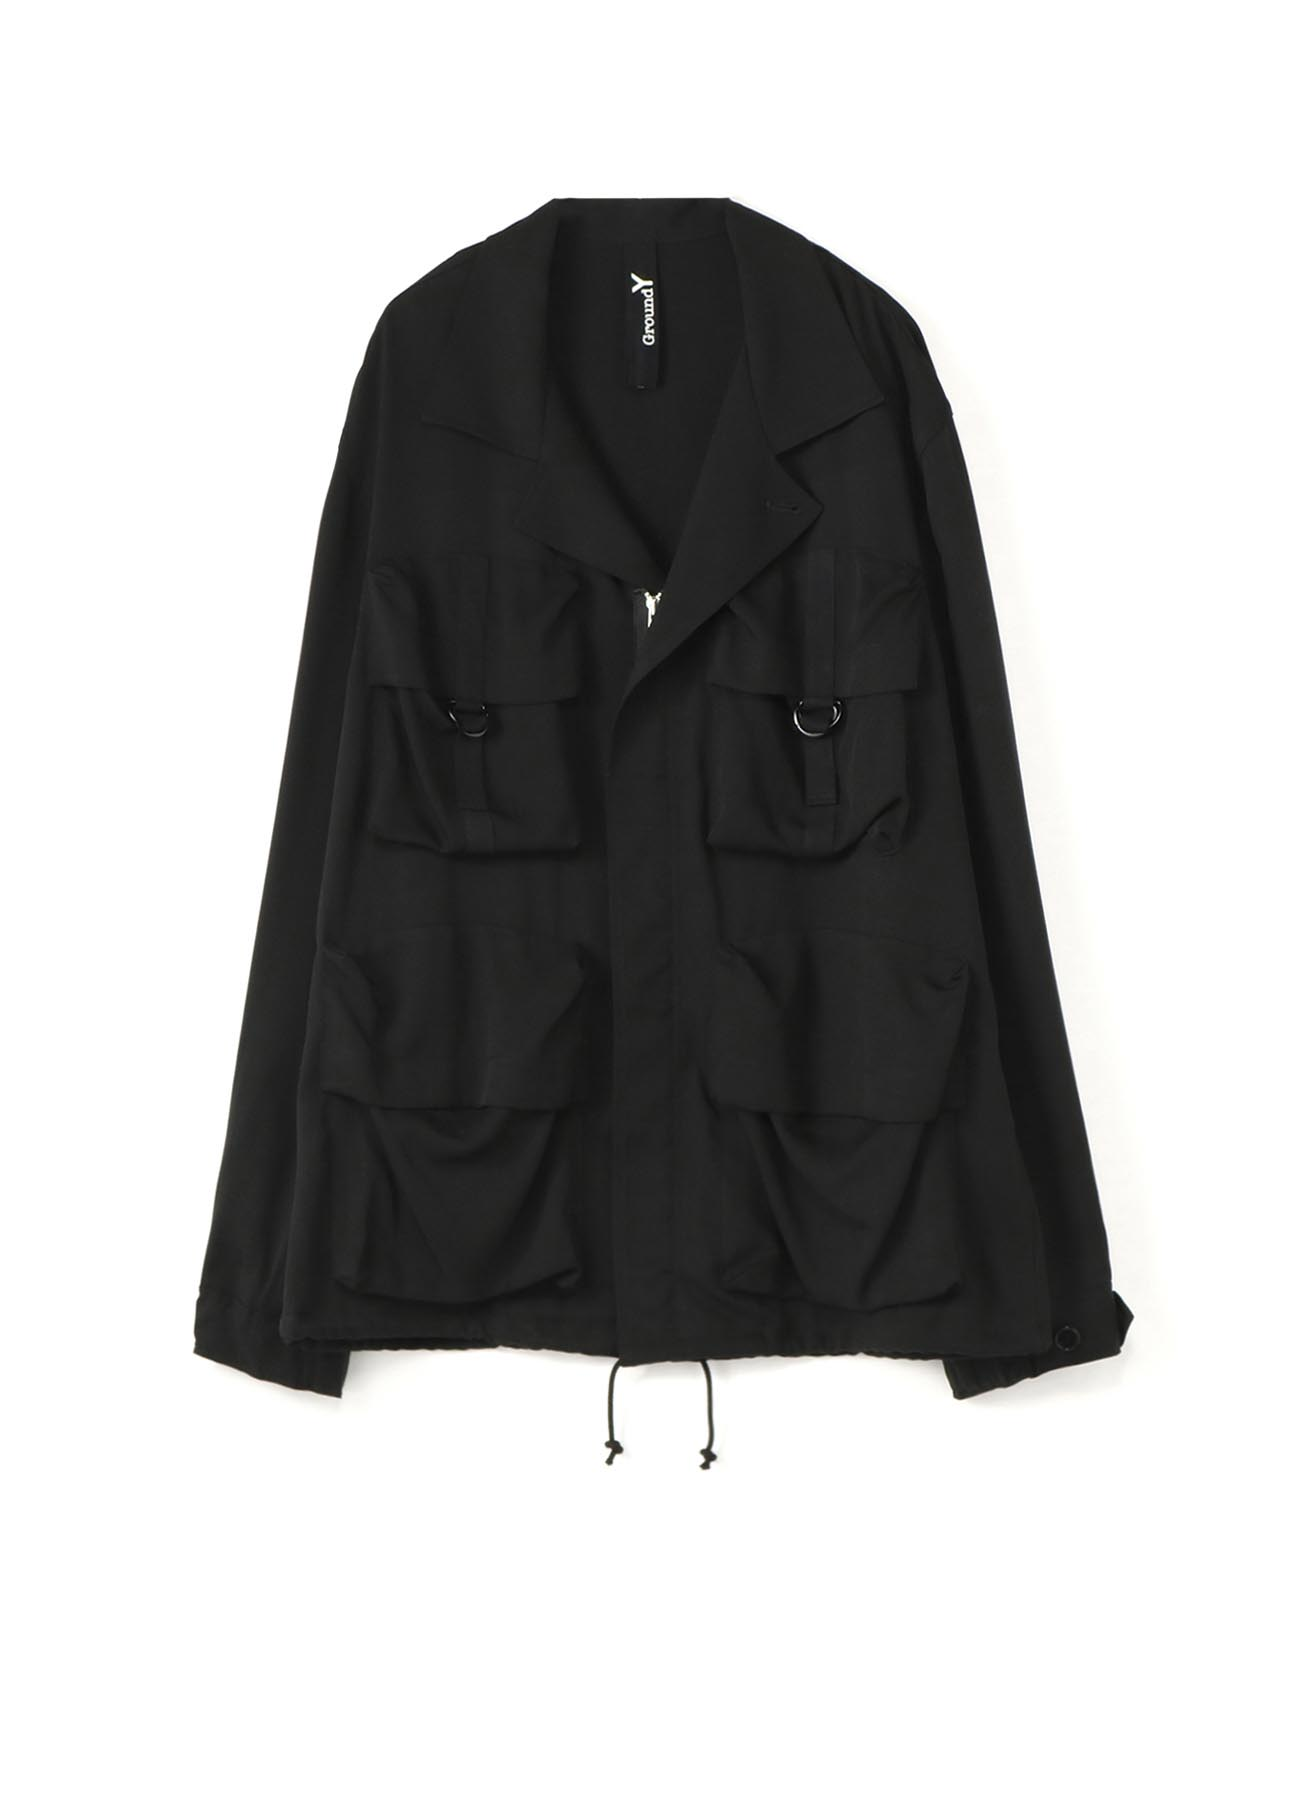 TE/Burberry Open Collar Pocket Blouson